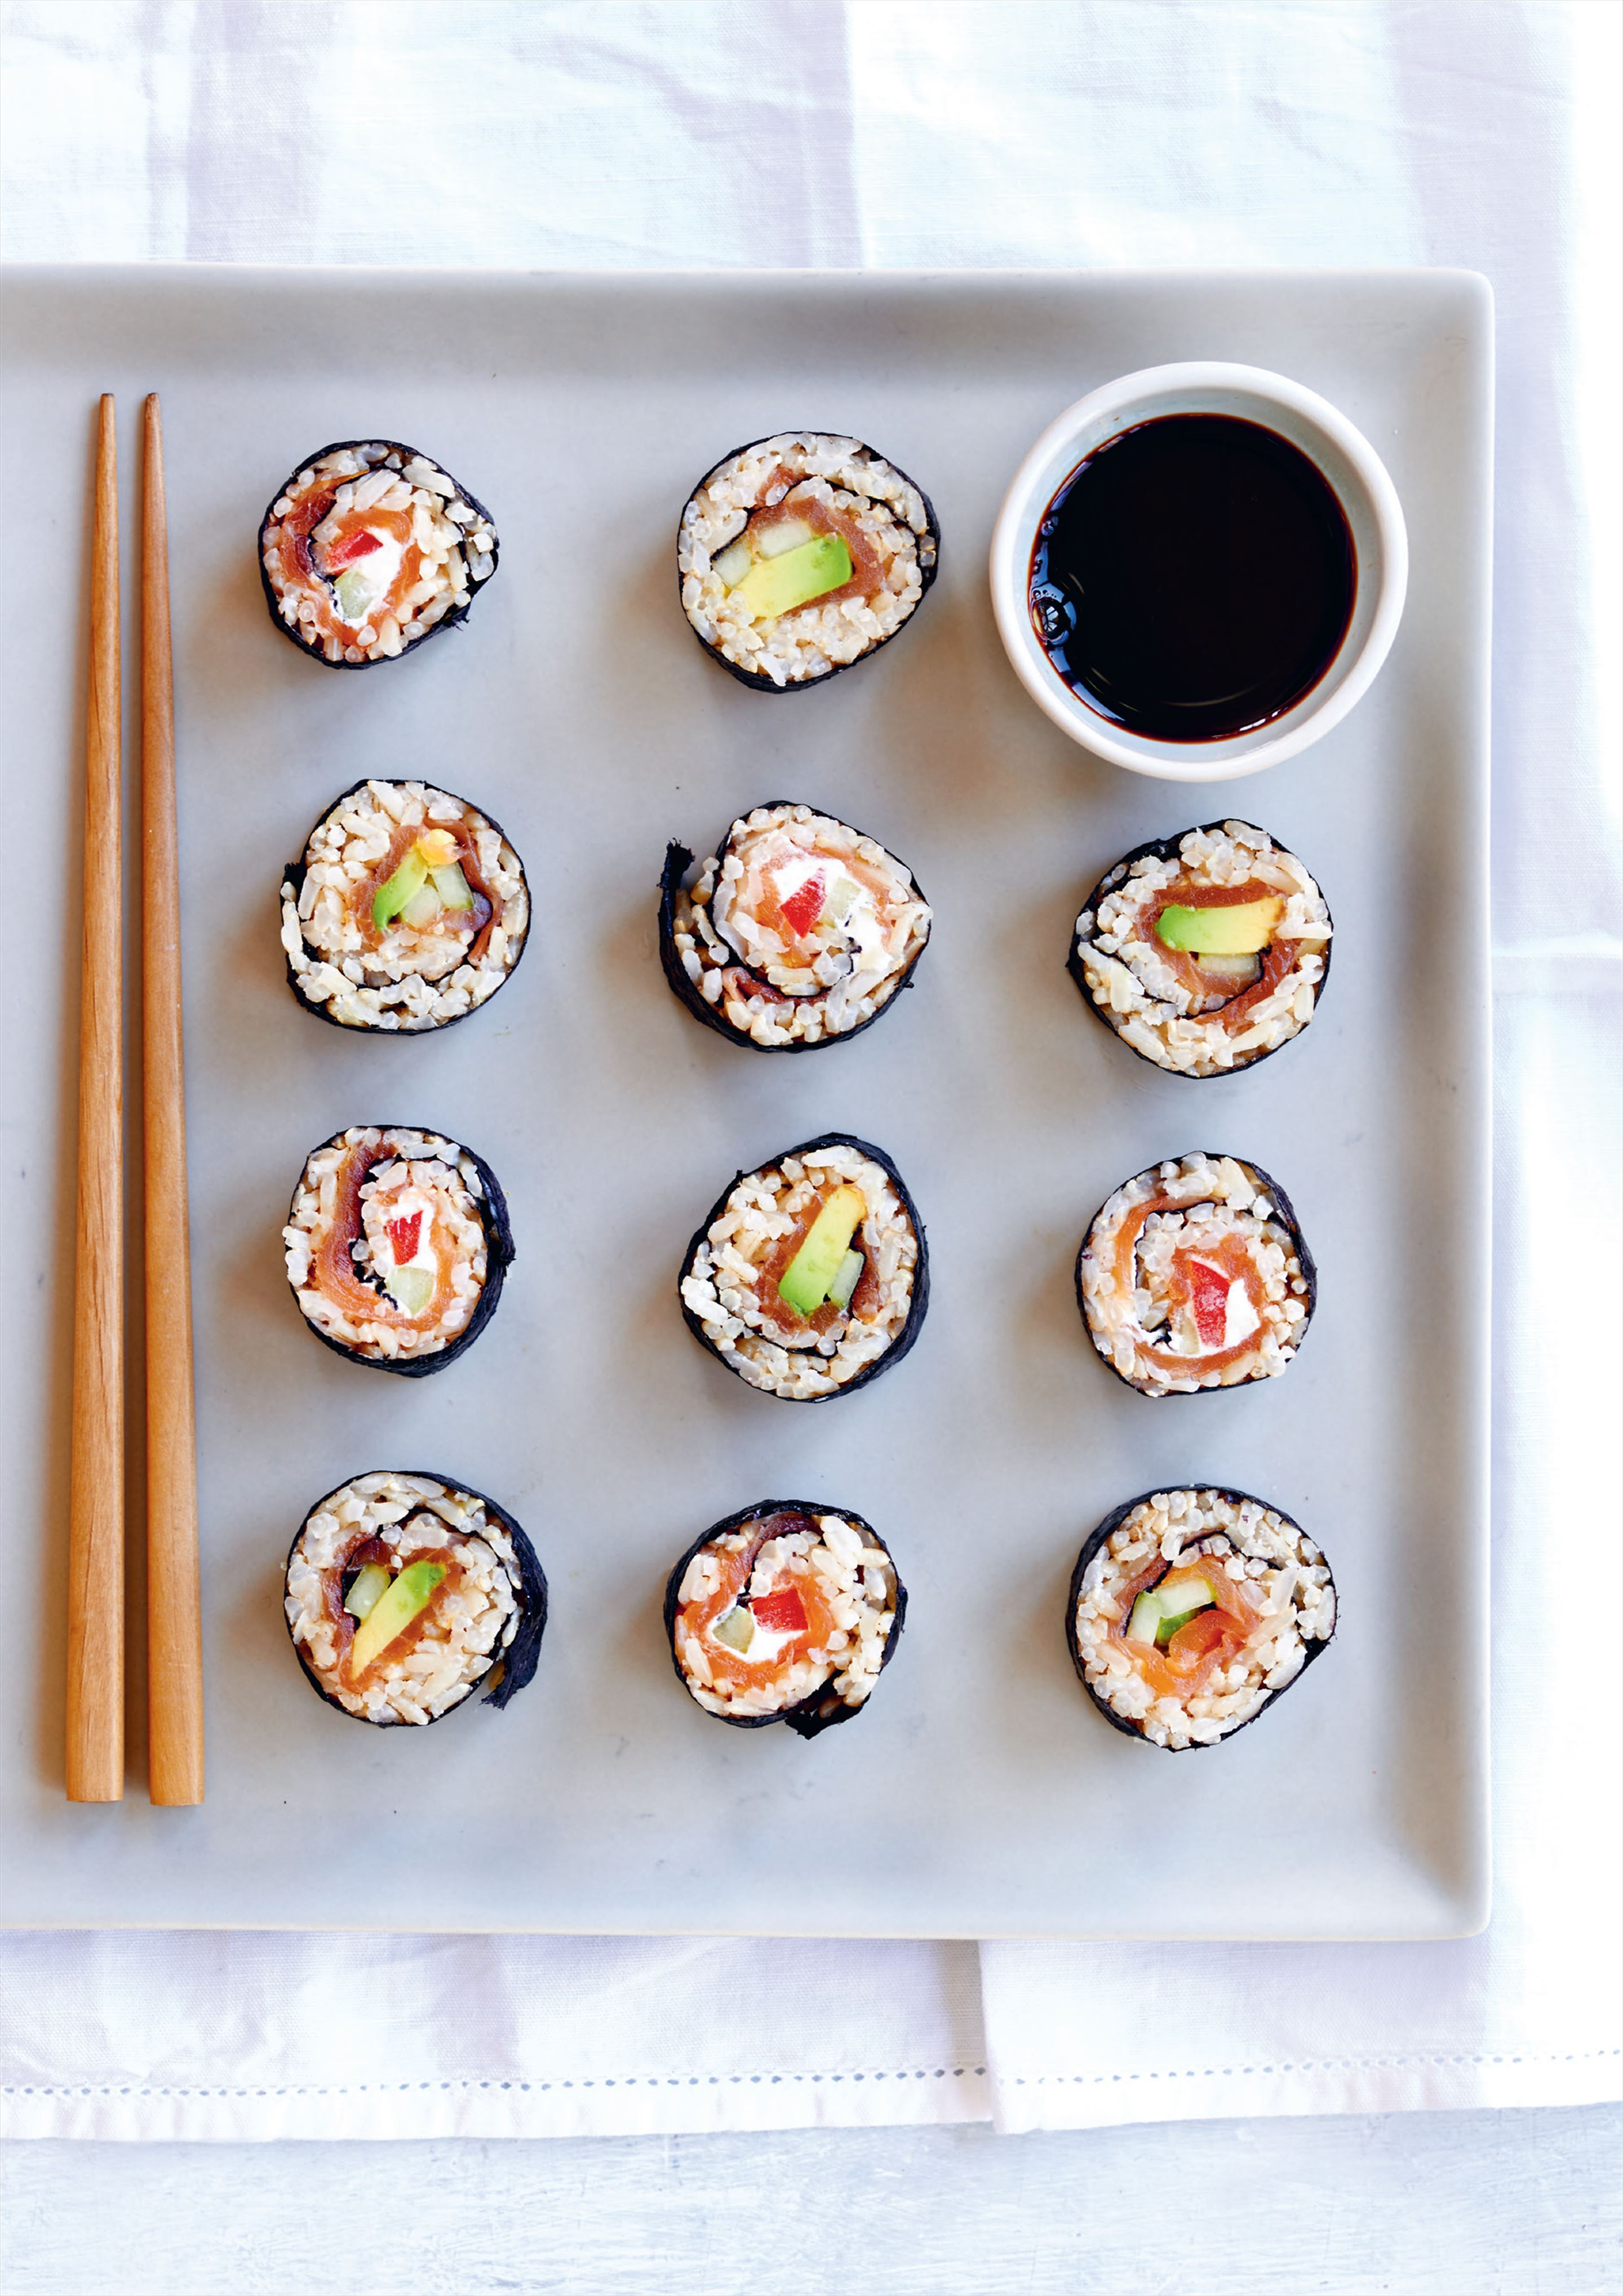 Brown rice or quinoa sushi